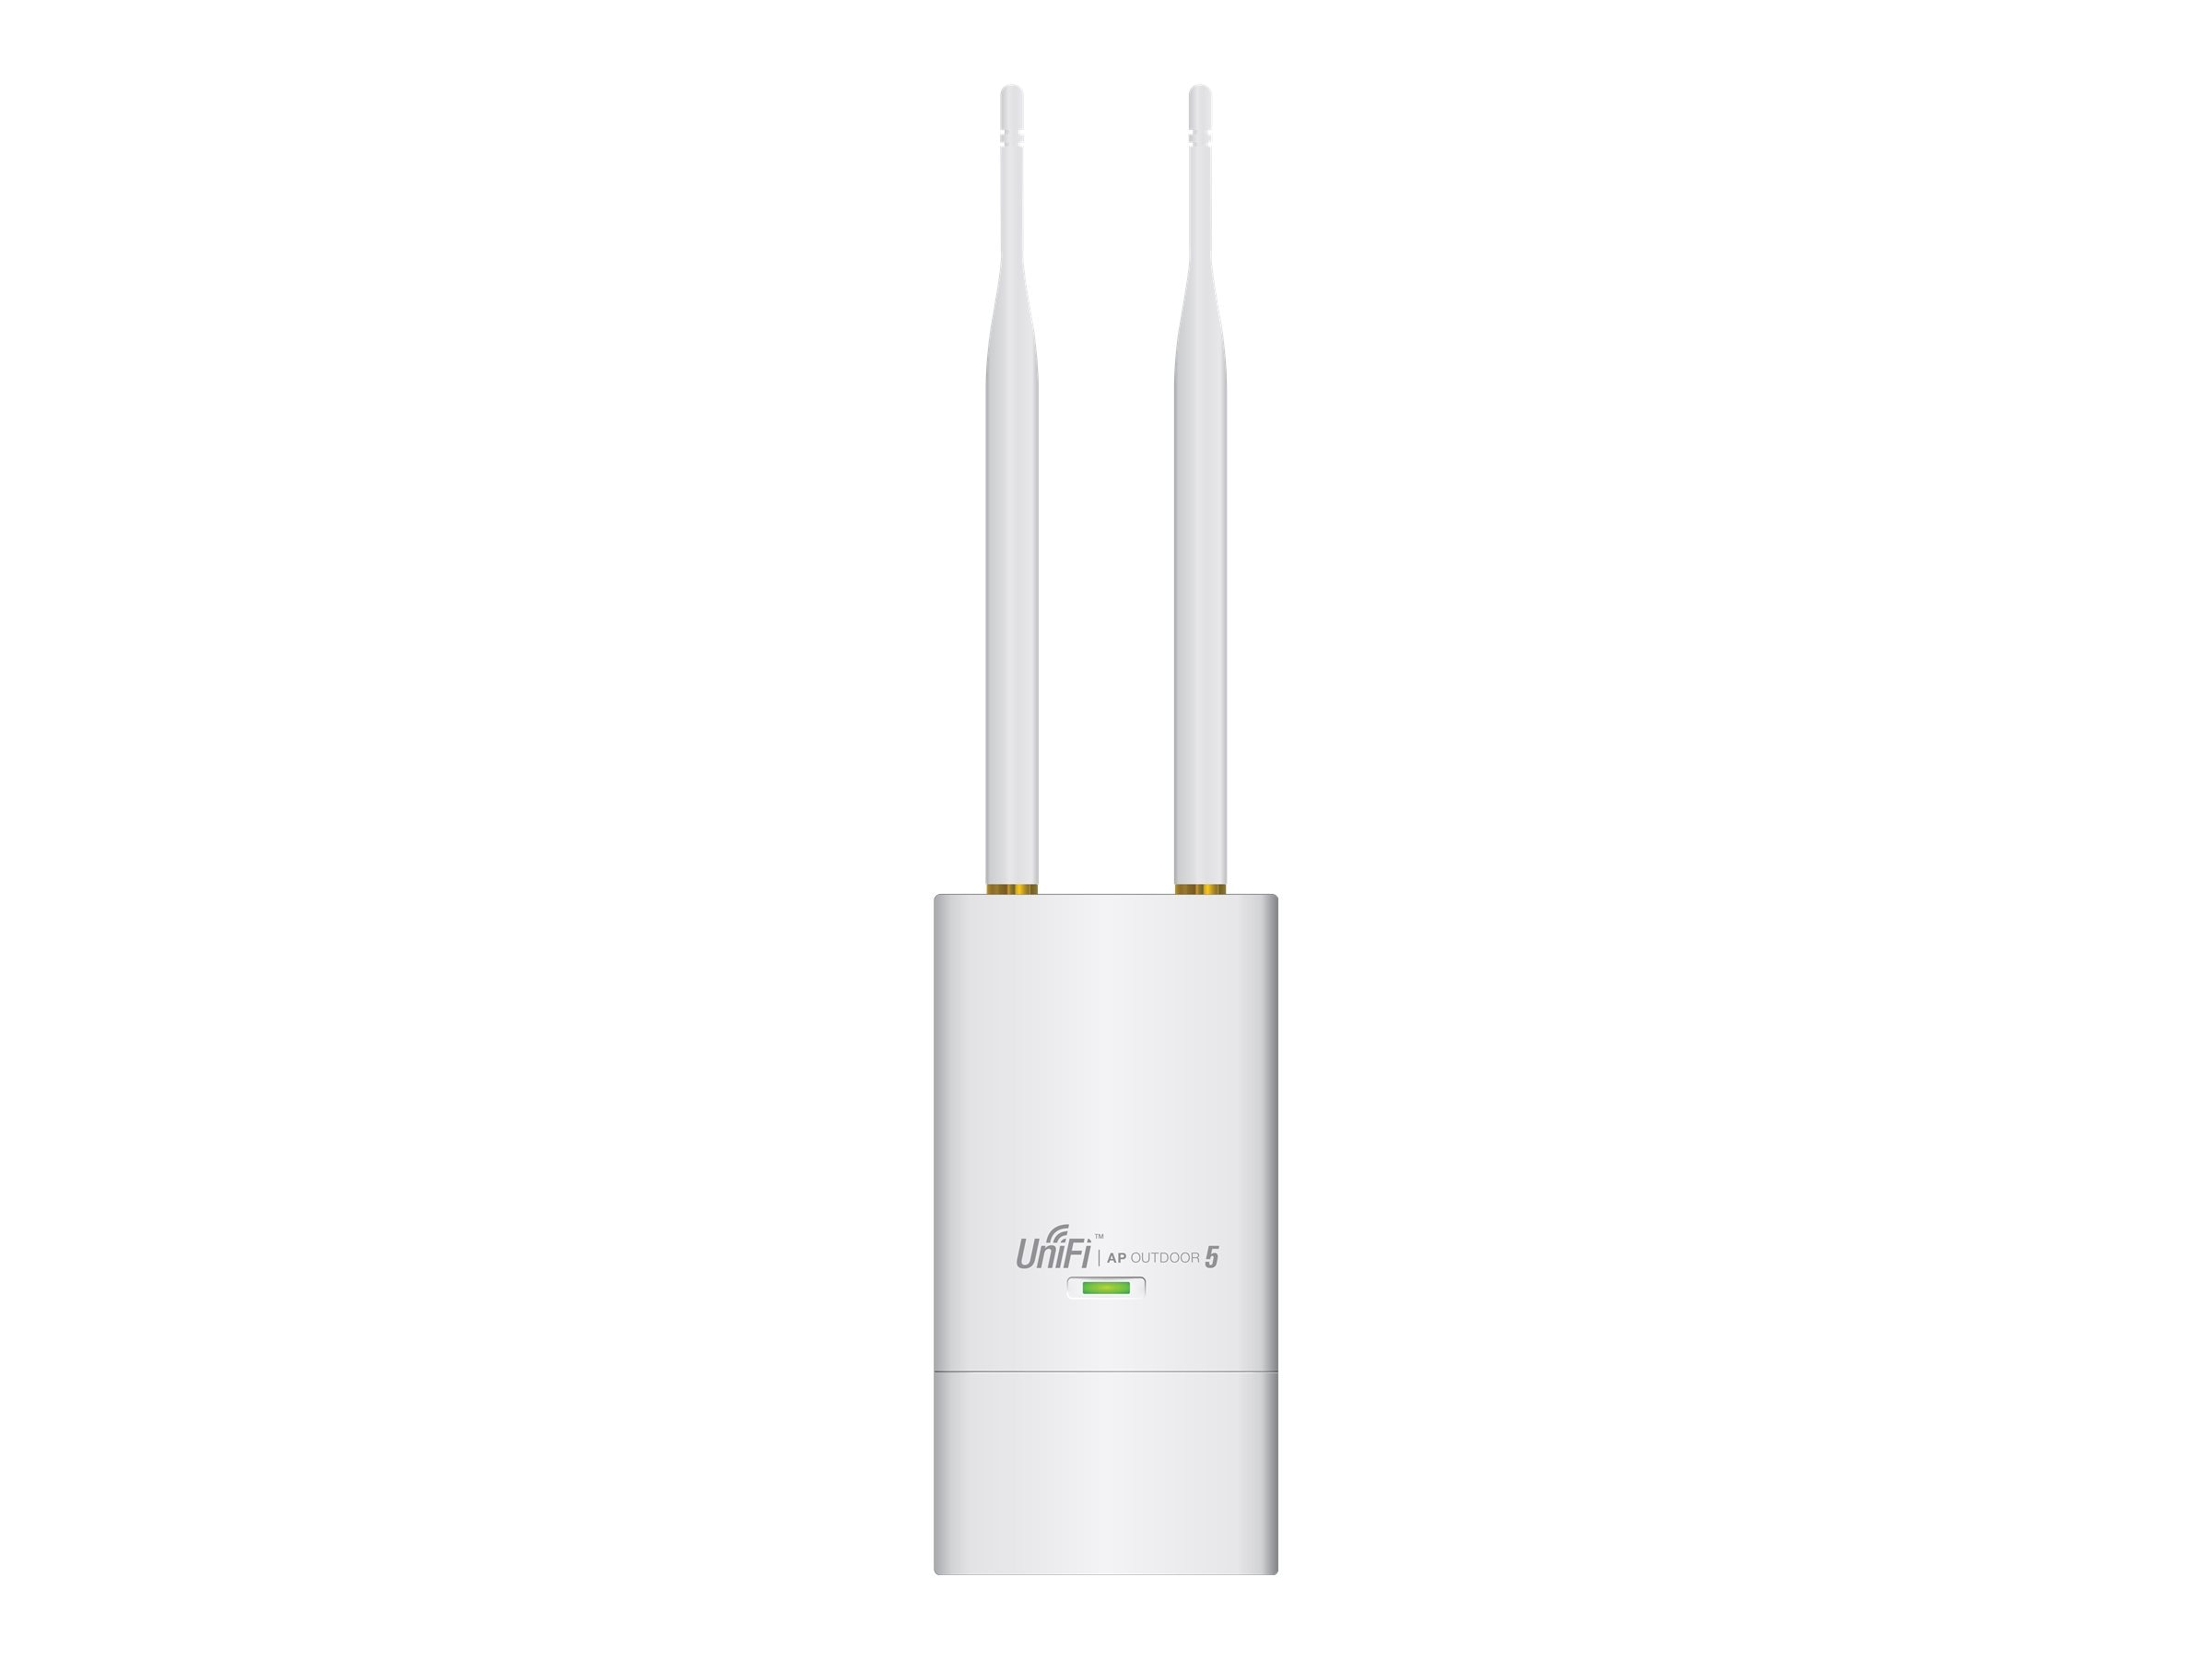 Ubiquiti Networks UAP-OUTDOOR-5 Image 1